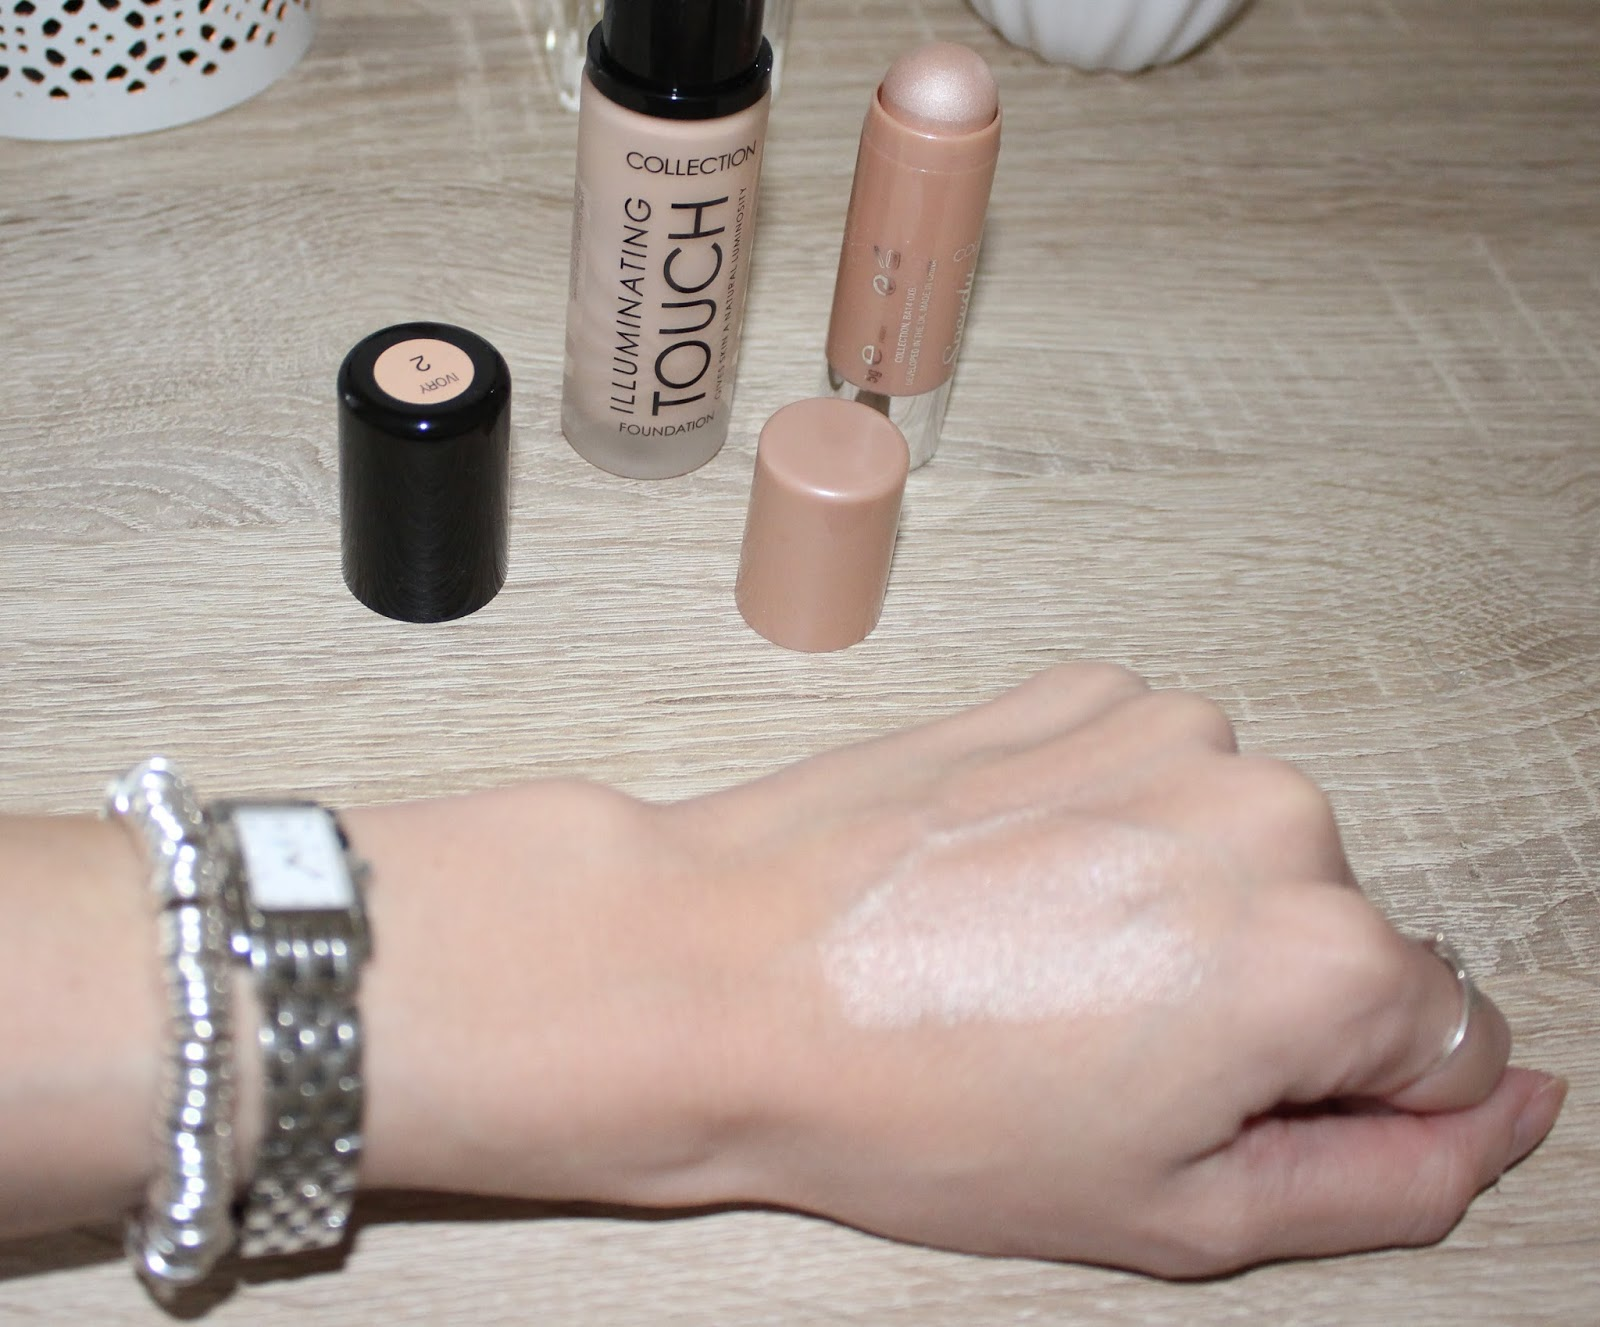 Strobing for Beginners with Collection Illuminating Touch Foundation and Speedy Highlighter